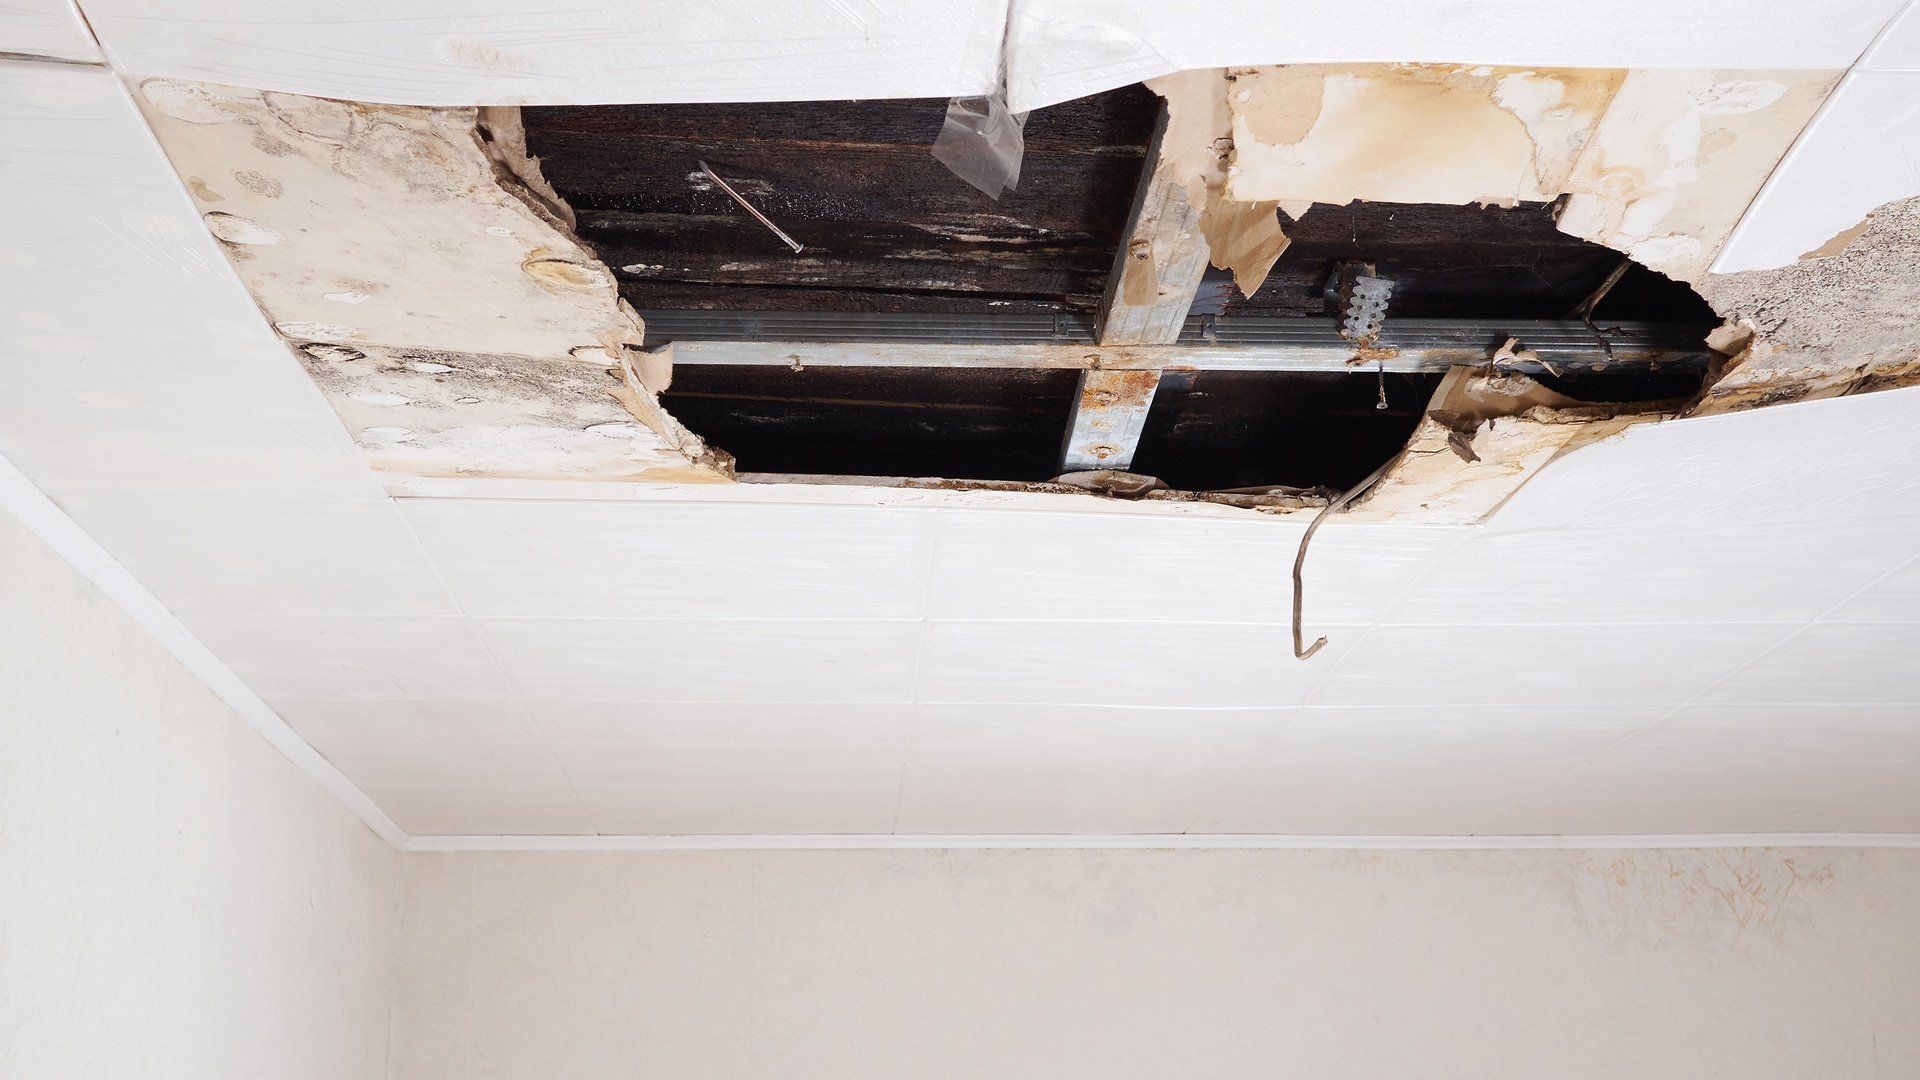 Ceiling collapse injury lawyer